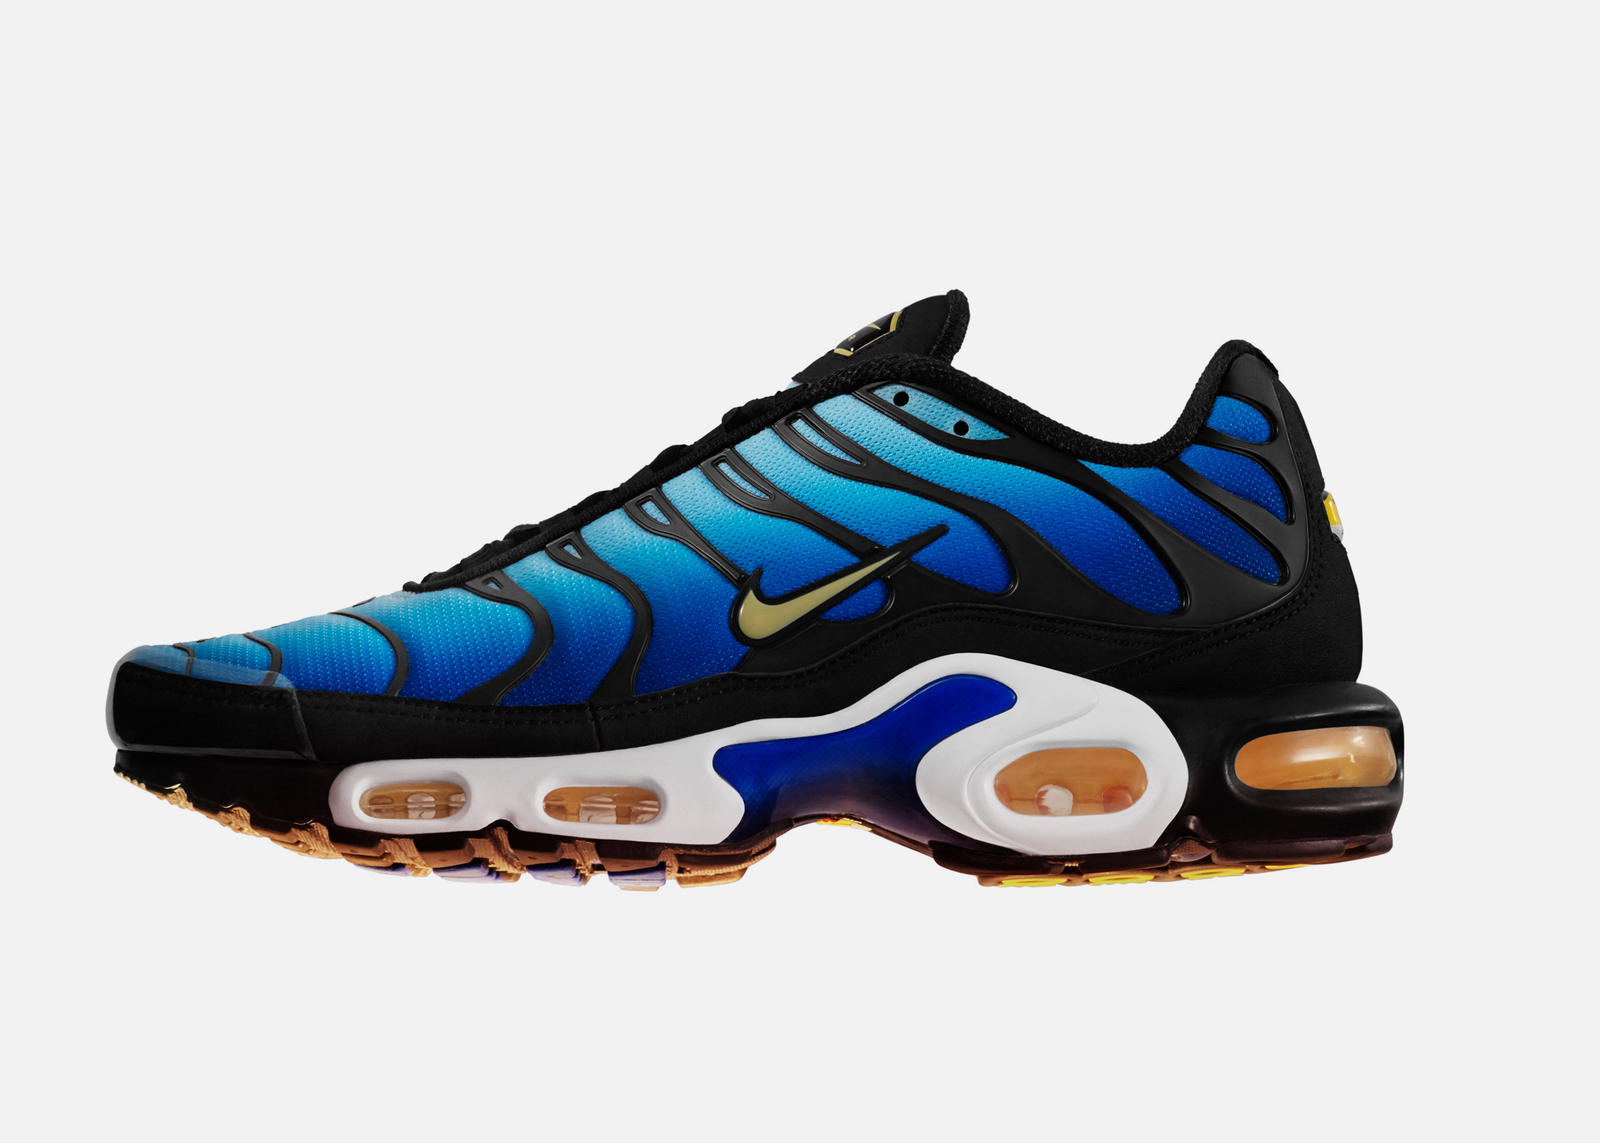 online retailer 2d019 a8d43 The Untold Story of the Nike Air Max Plus 20